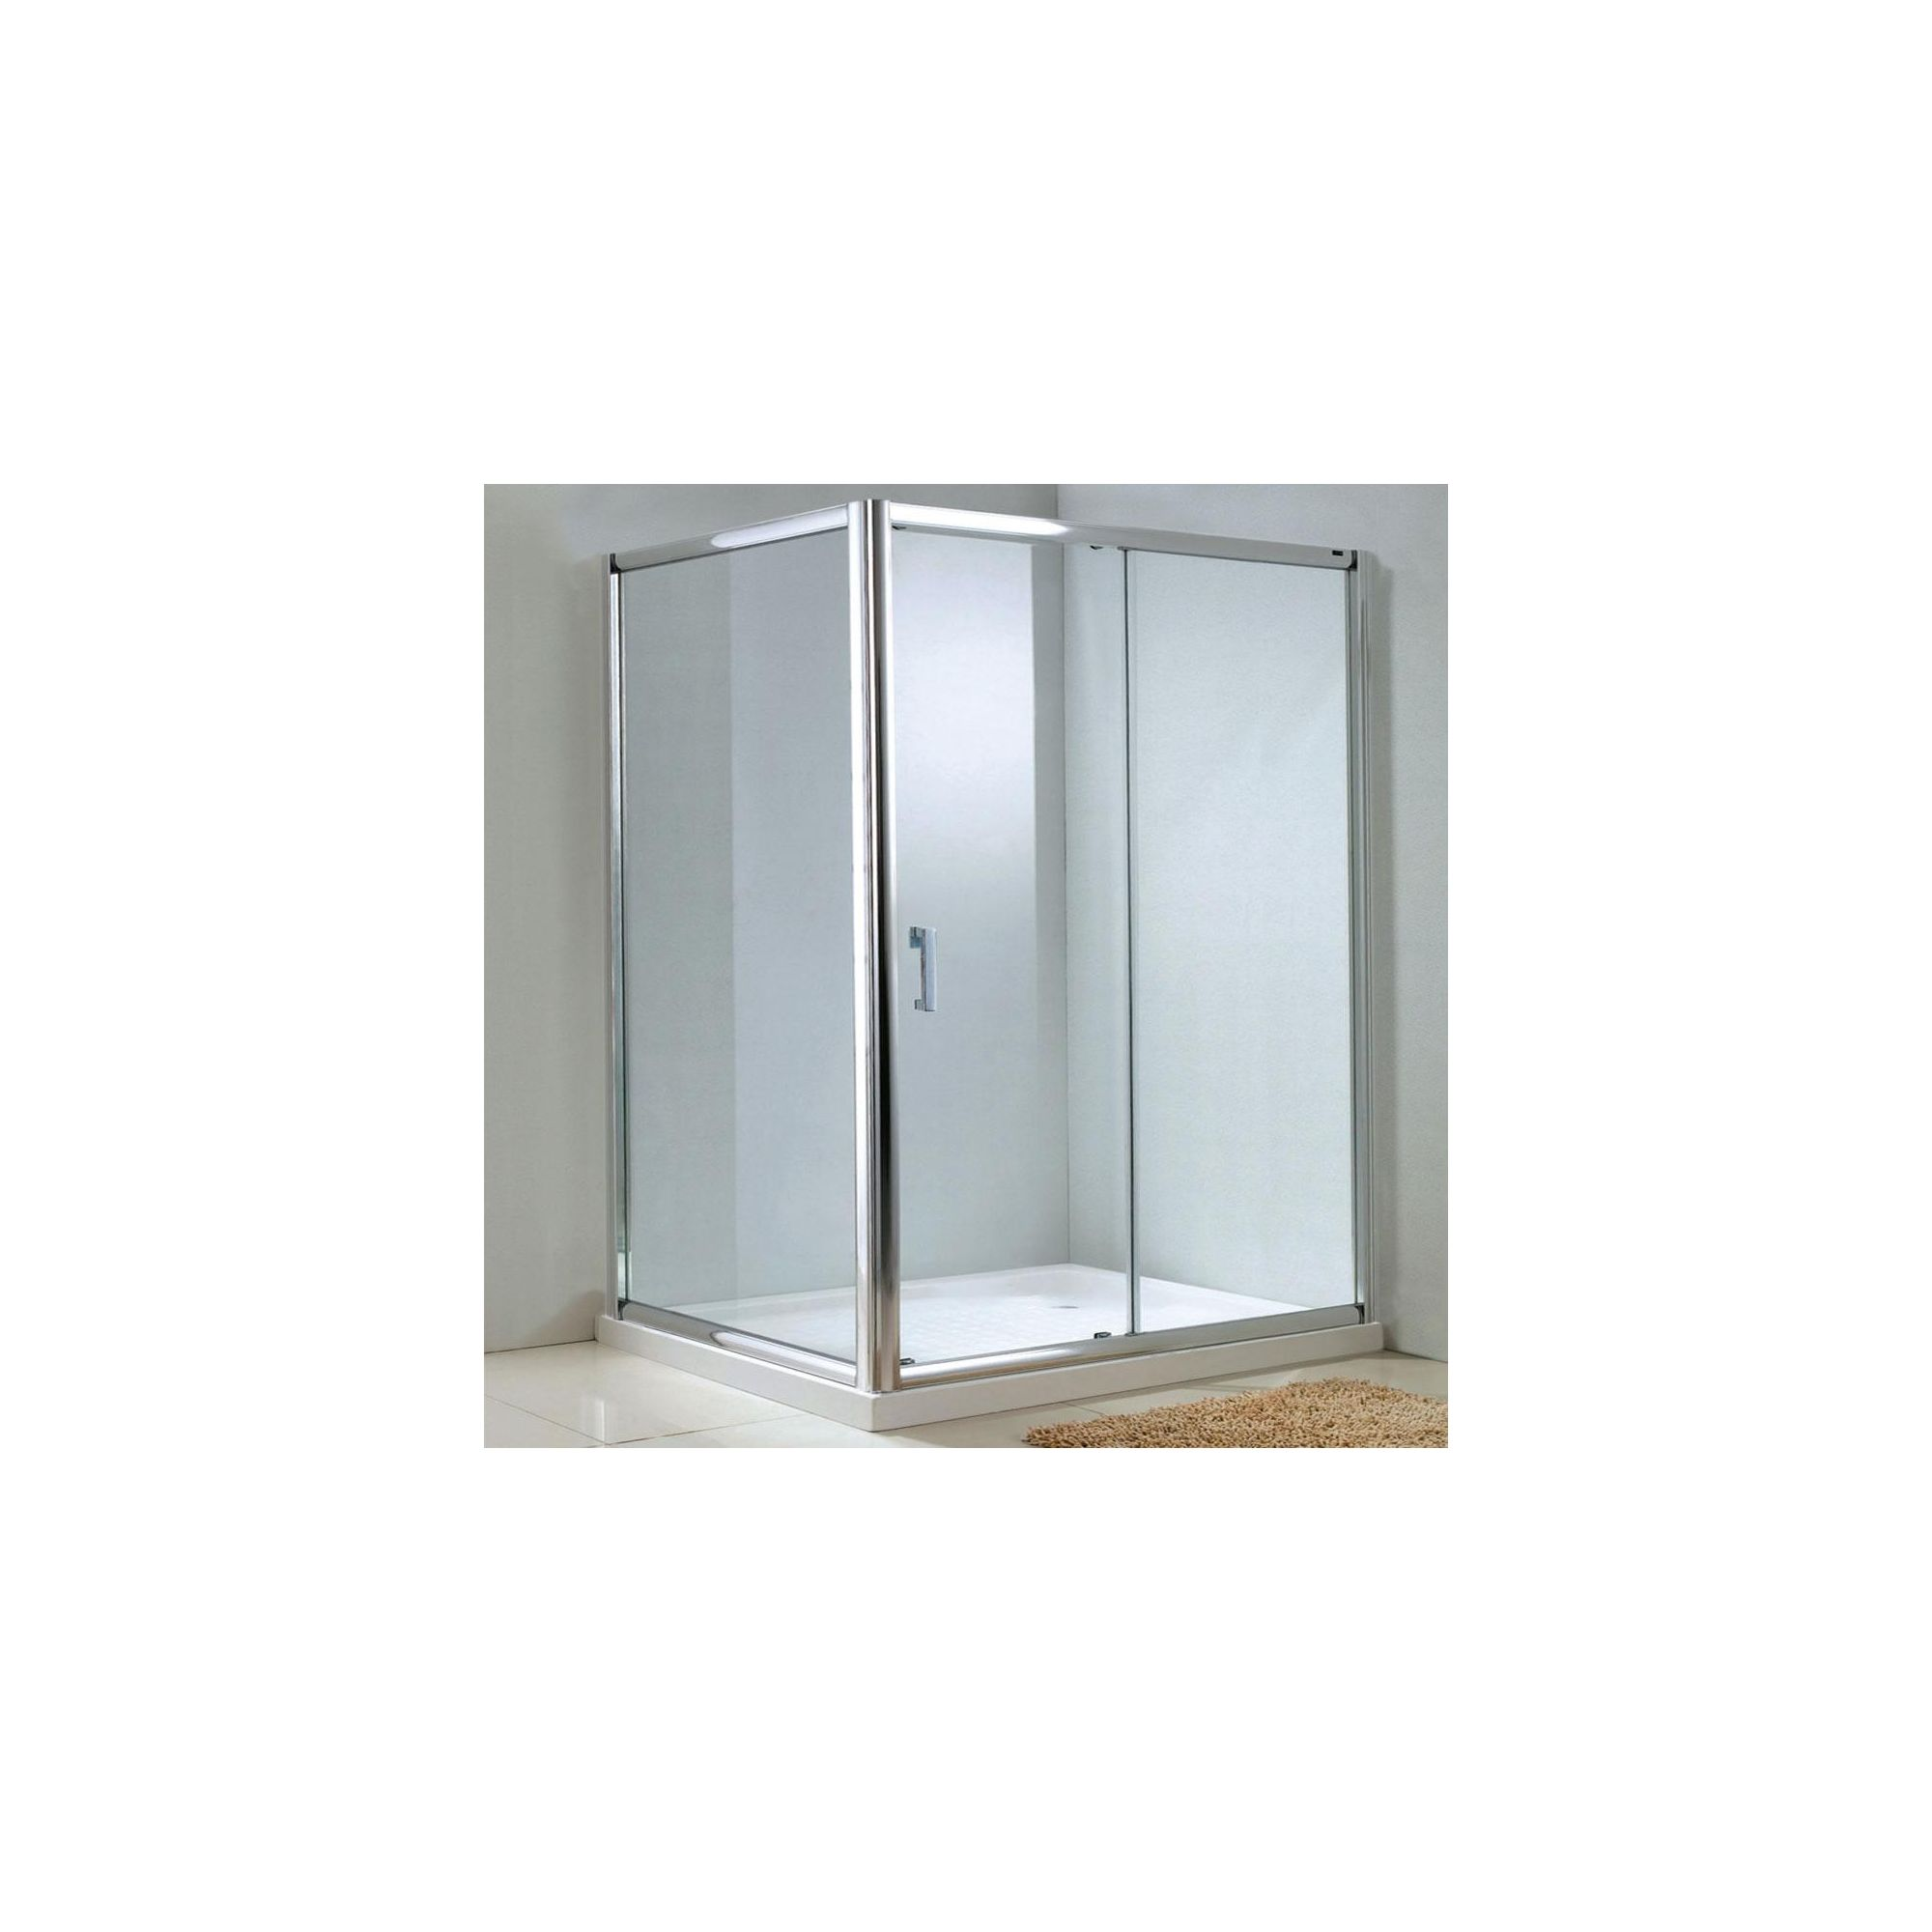 Duchy Style Single Sliding Door Shower Enclosure, 1200mm x 900mm, 6mm Glass, Low Profile Tray at Tescos Direct